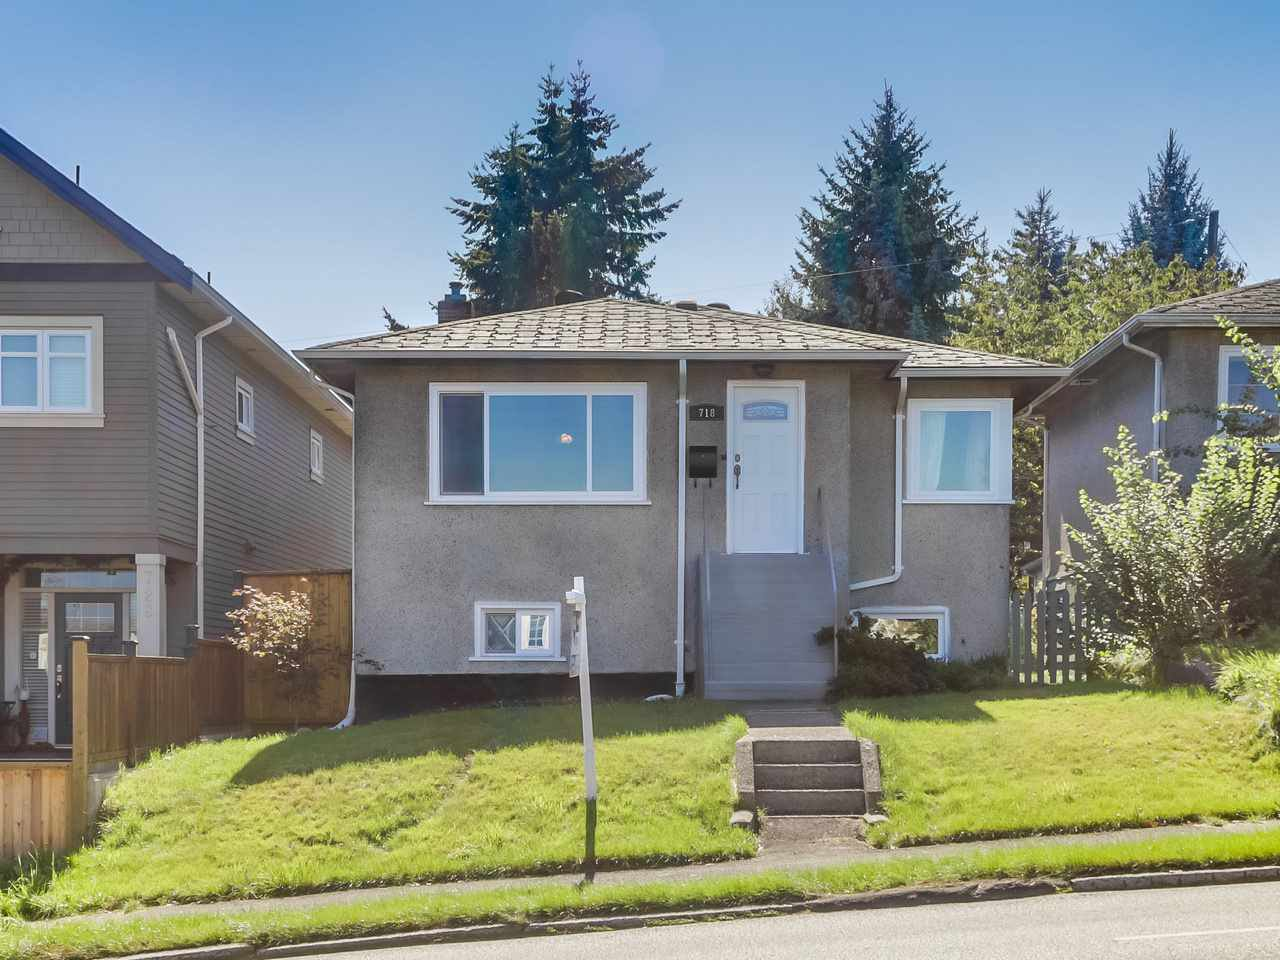 Main Photo: 718 E 12TH Avenue in Vancouver: Mount Pleasant VE House for sale (Vancouver East)  : MLS®# R2107688